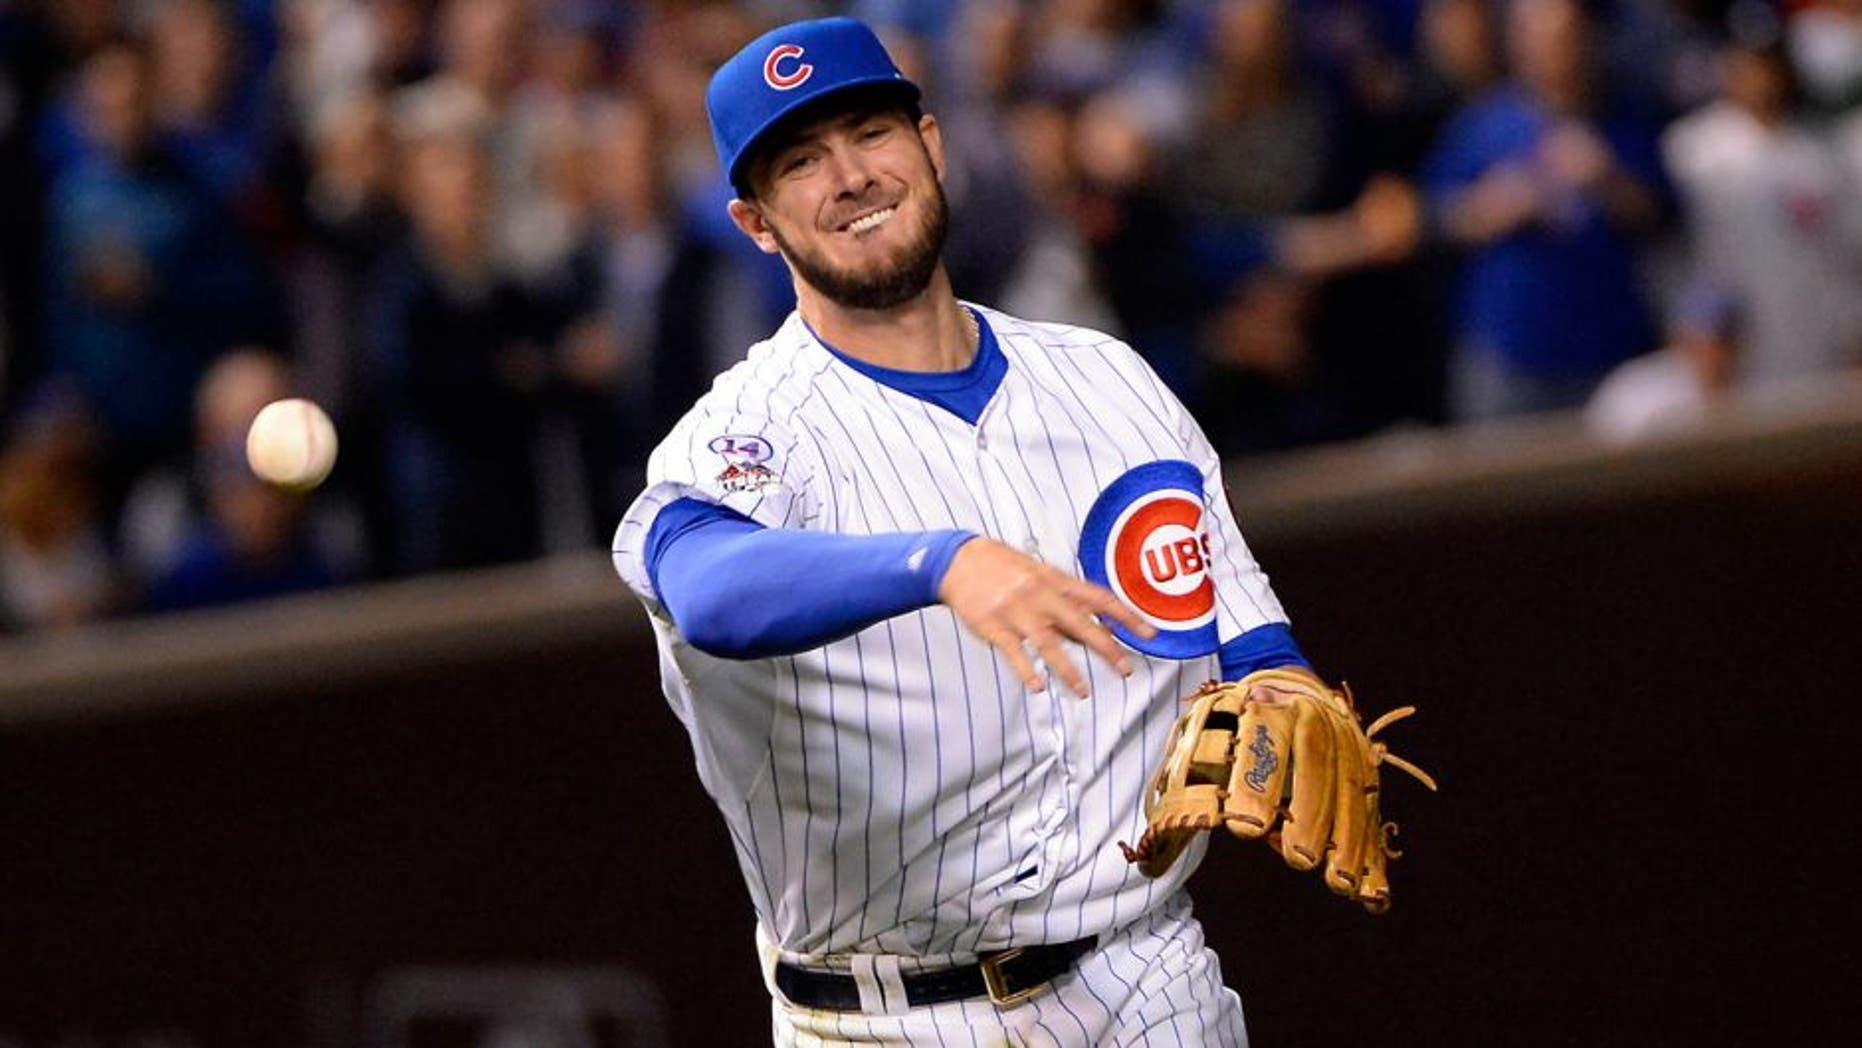 CHICAGO, IL - OCTOBER 20: Kris Bryant #17 of the Chicago Cubs throws to first base during Game 3 of the NLCS against the New York Mets at Wrigley Field on Tuesday, October 20, 2015 in Chicago , Illinois. (Photo by Ron Vesely/MLB Photos via Getty Images)